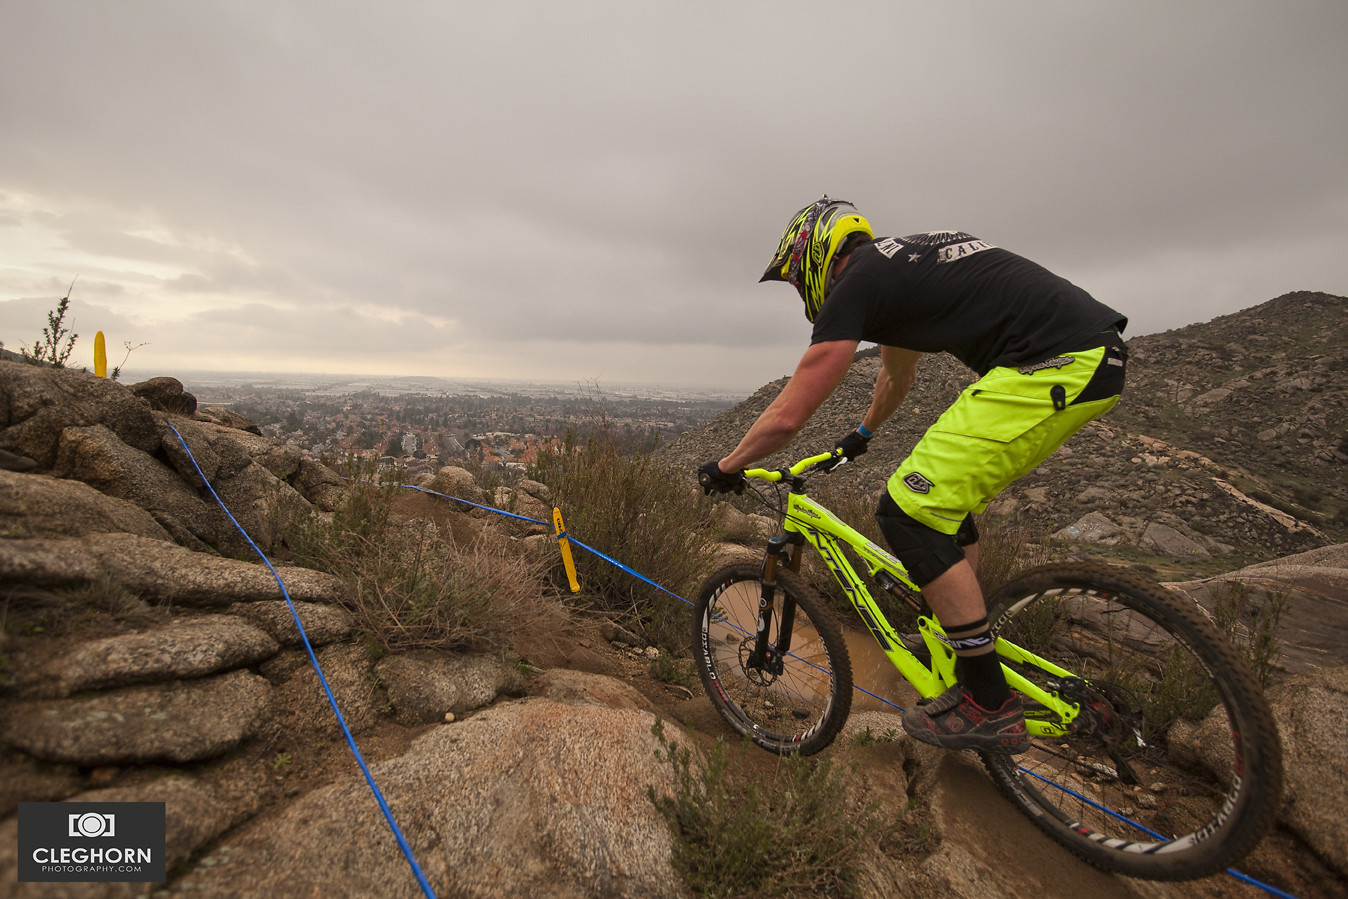 Intense! - Cleghorn Photography - Mountain Biking Pictures - Vital MTB